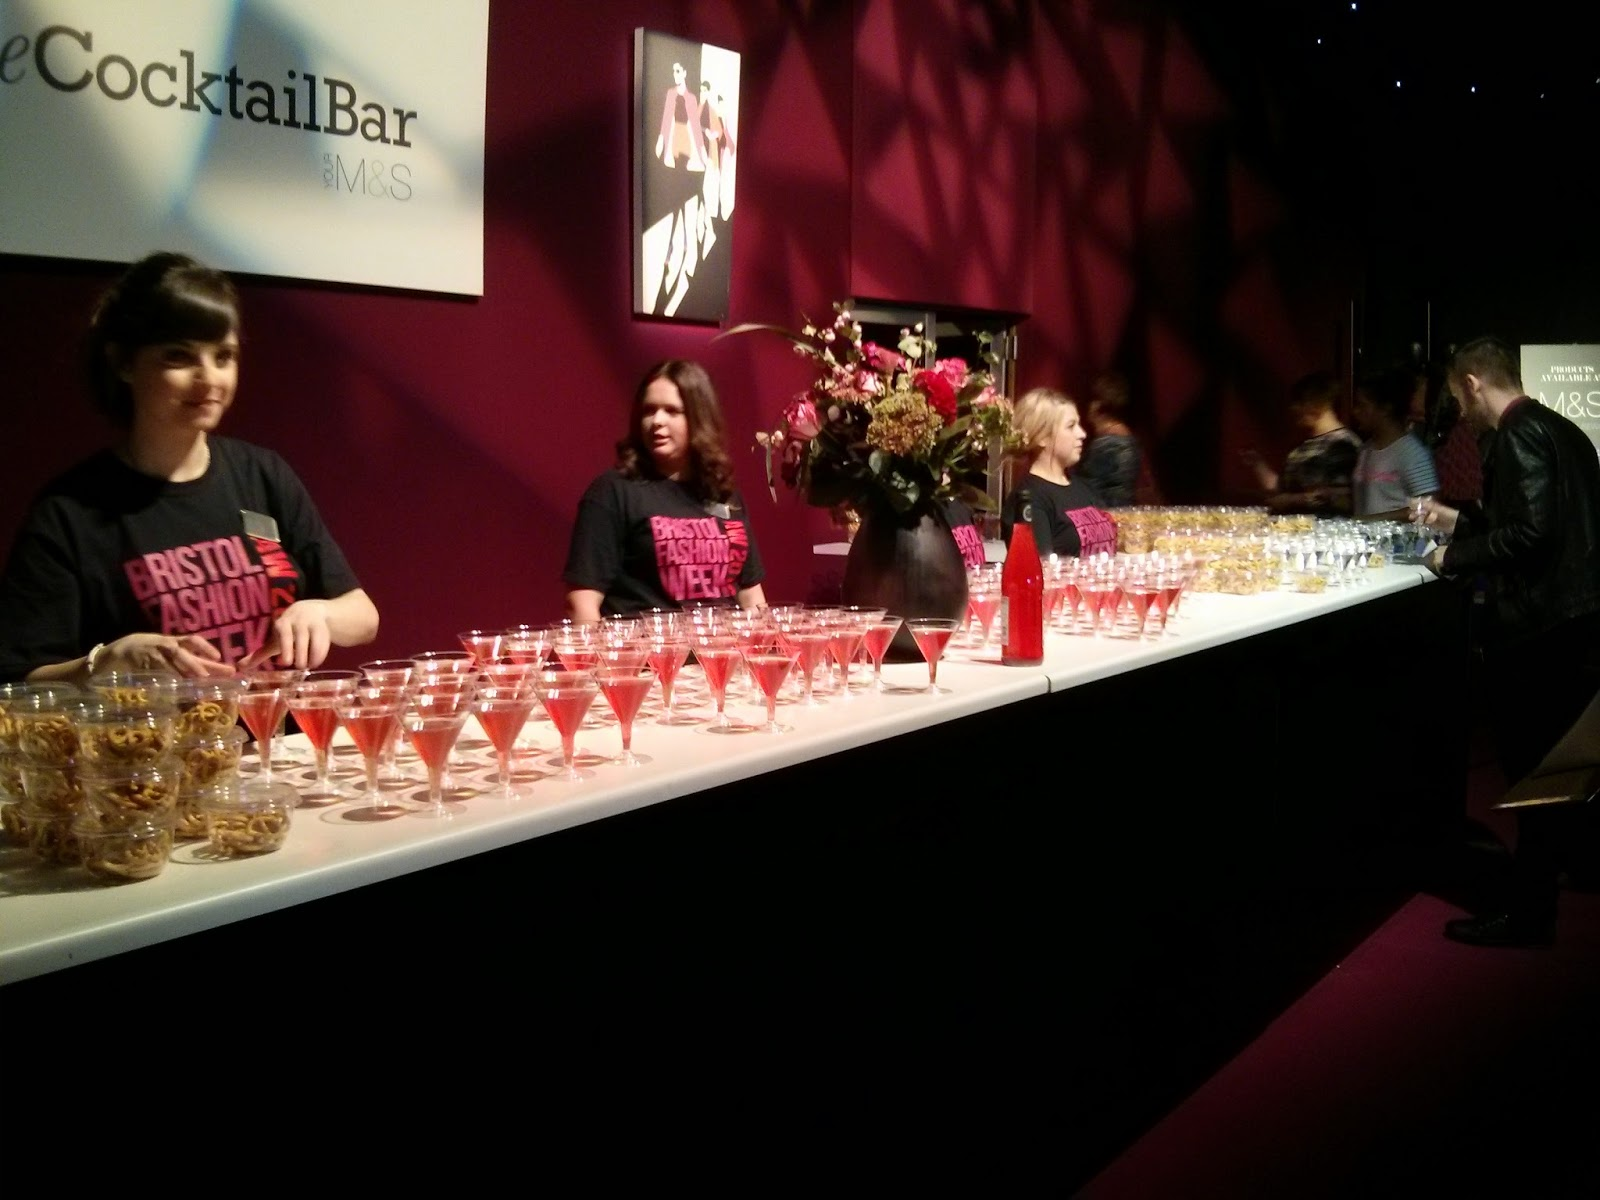 Cocktail Bar, Bristol Fashion Week AW 2014